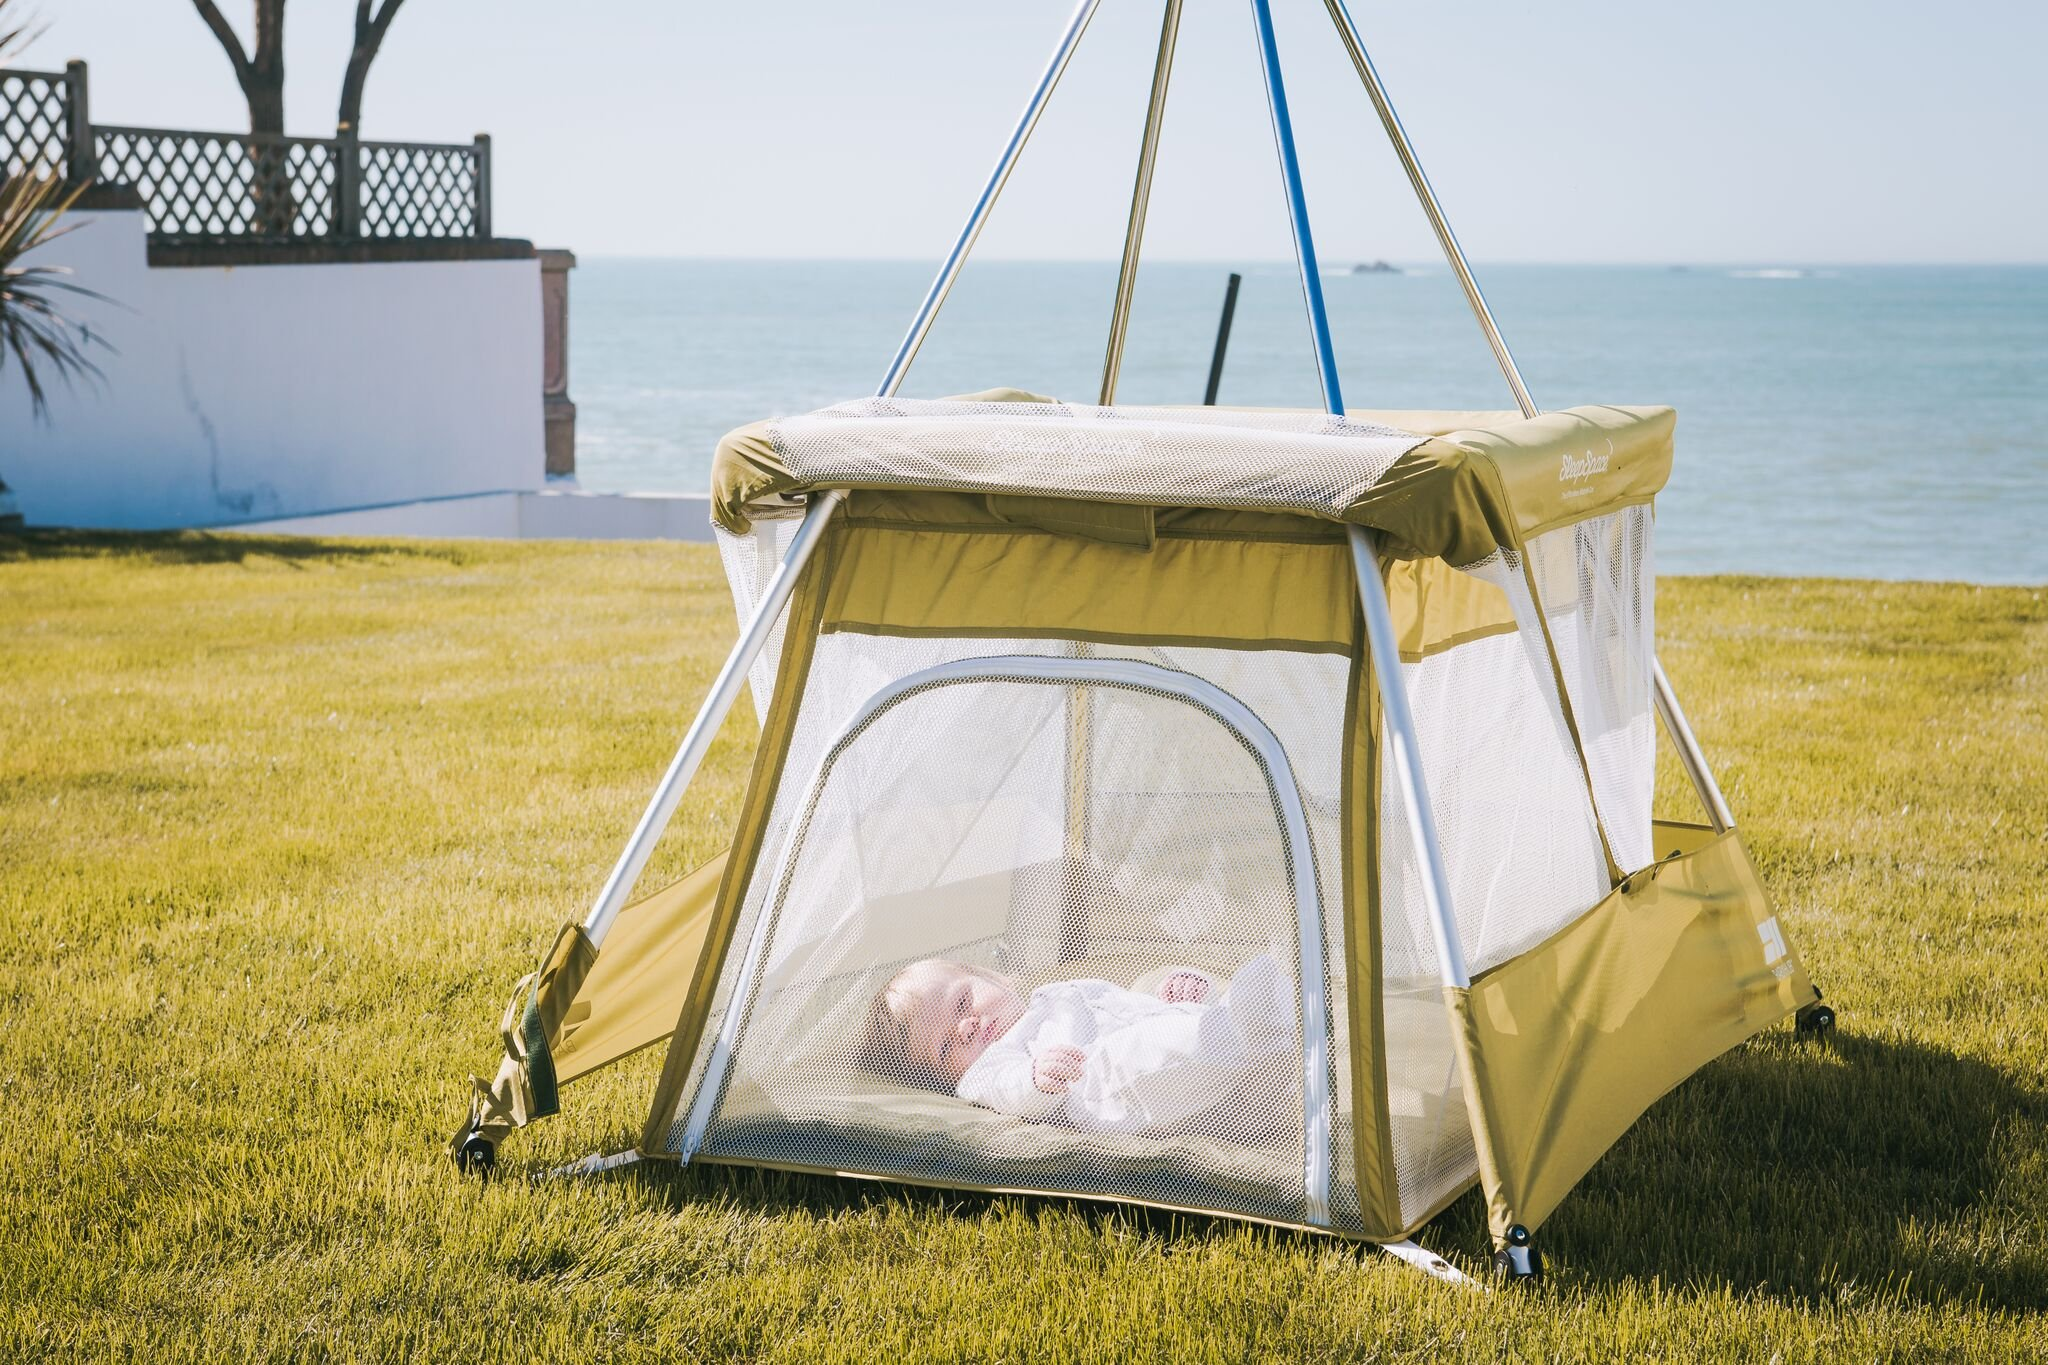 BabyHub SleepSpace Travel Cot with Mosquito Net, Green BabyHub Three cots in one; use as a travel cot, mosquito proof space and reuse as a play tepee Includes cotton canvas tepee cover Can be set up and moved even while holding a baby. Dimensions Open - L 116cm x W 960cm x H 122cm (when opened). Dimensions Closed - 83cm H x 22cm x 42cm (in bag) 5